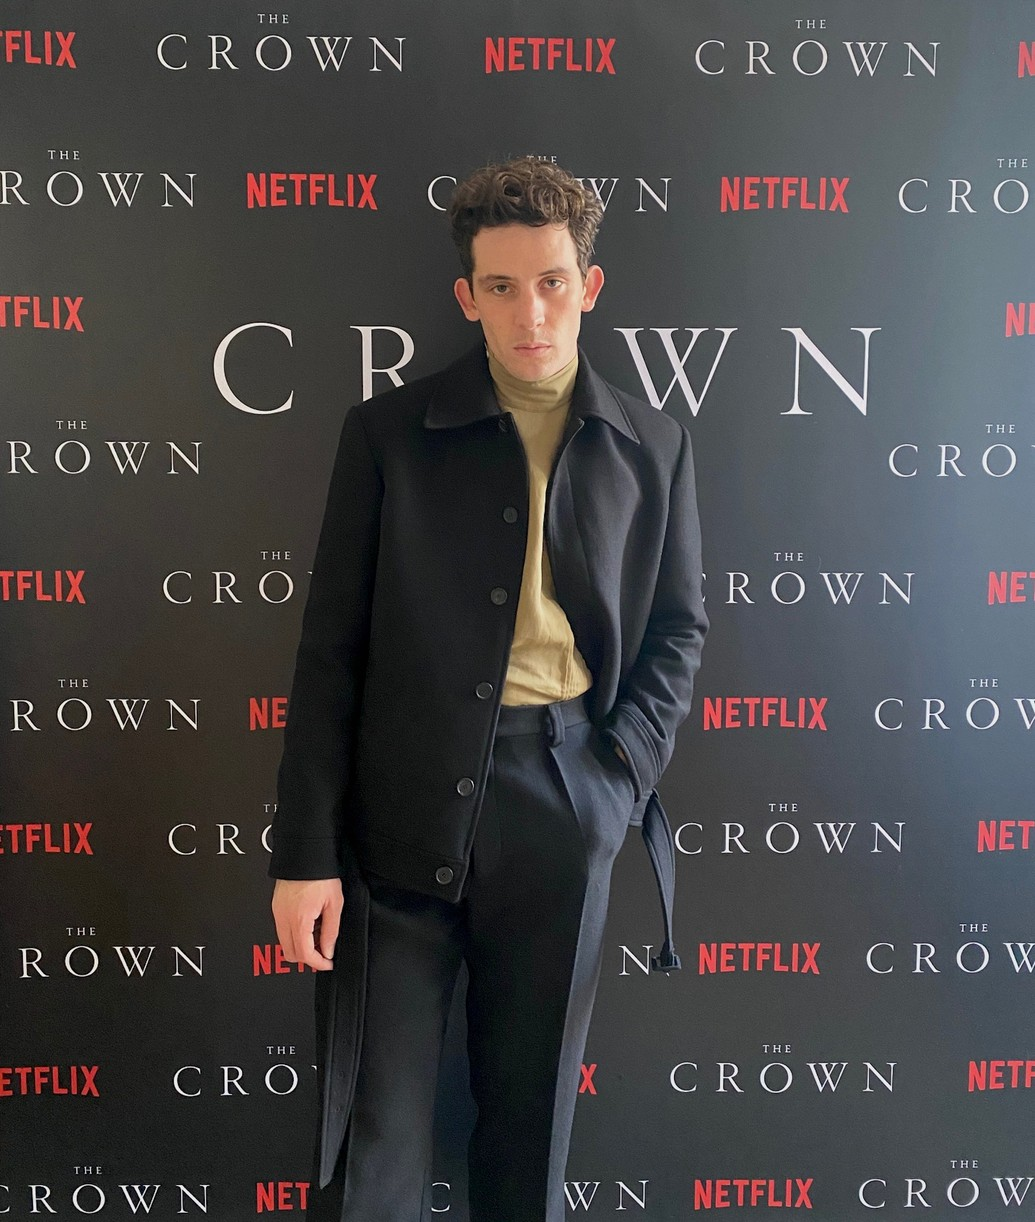 crown cast took own premiere pics at home lockdown 044500054